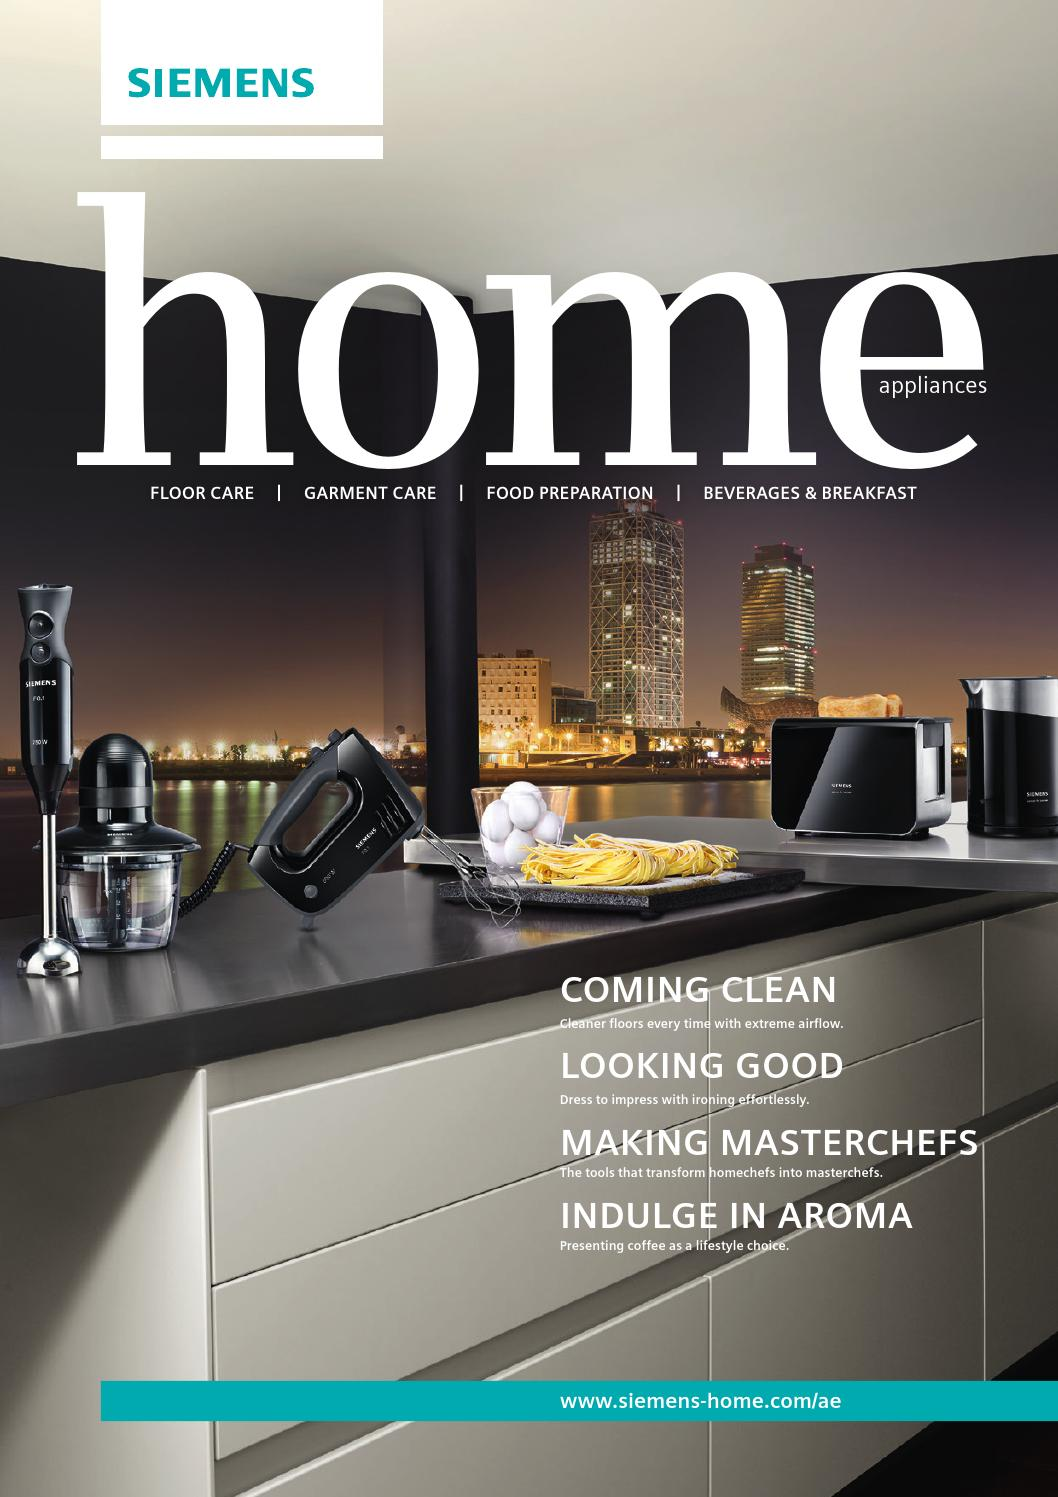 better life siemens cp catalogue 2015 by better life. Black Bedroom Furniture Sets. Home Design Ideas